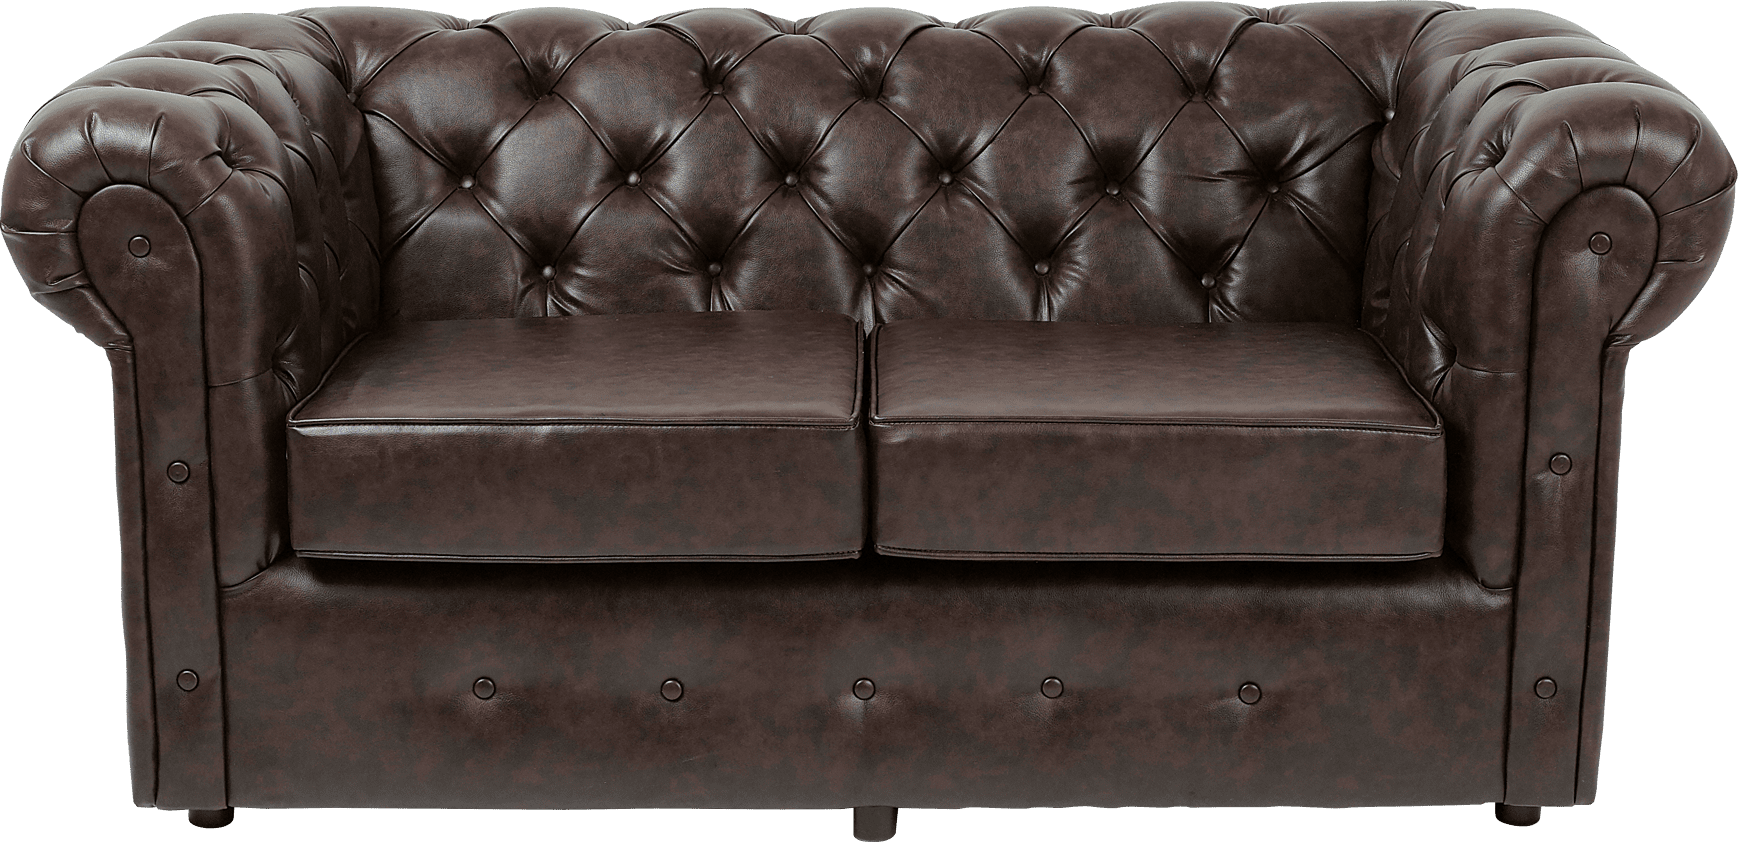 Lc 83 Chesterfield 2 Seater Sofa